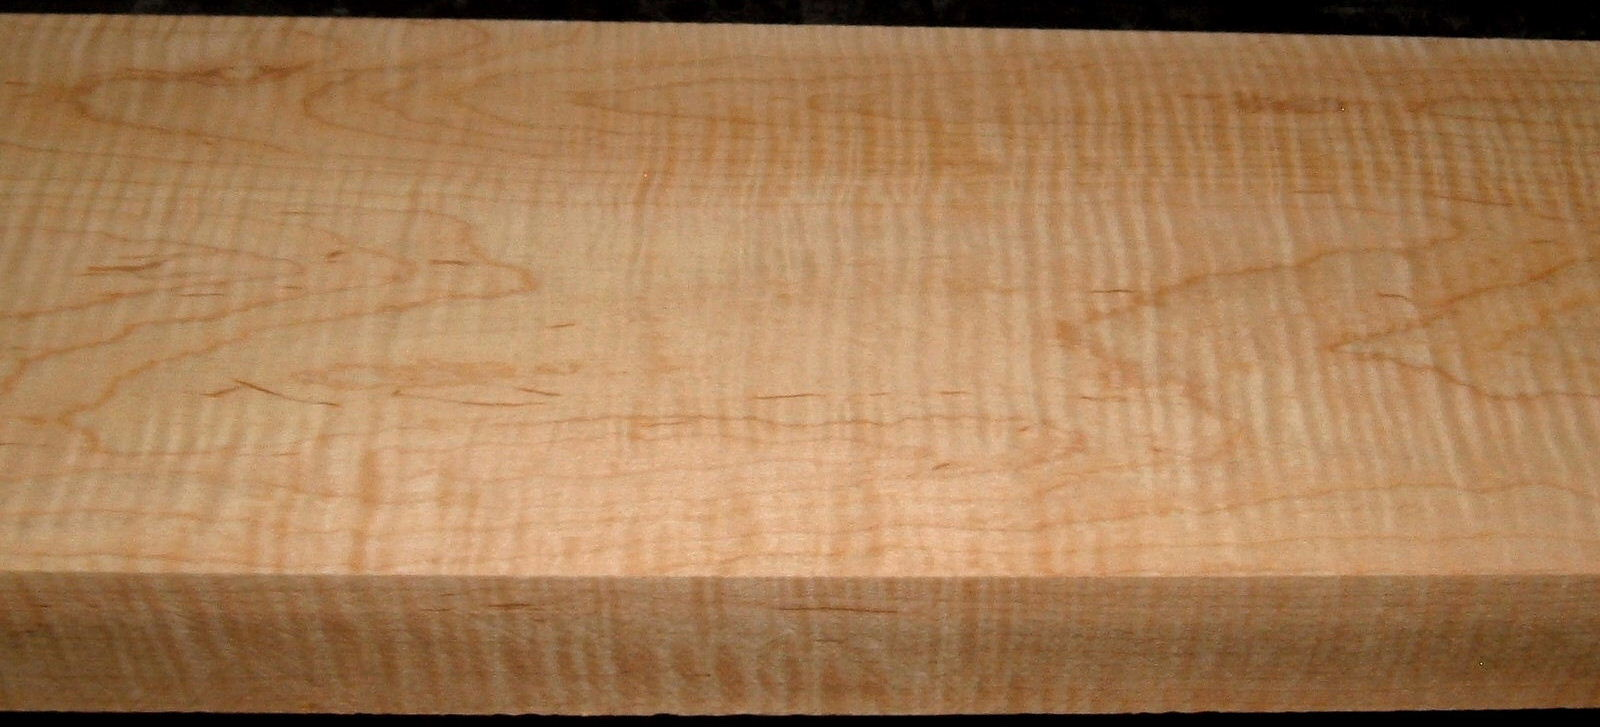 M2002-123, 1-13/16x6x49, Curly Tiger Maple